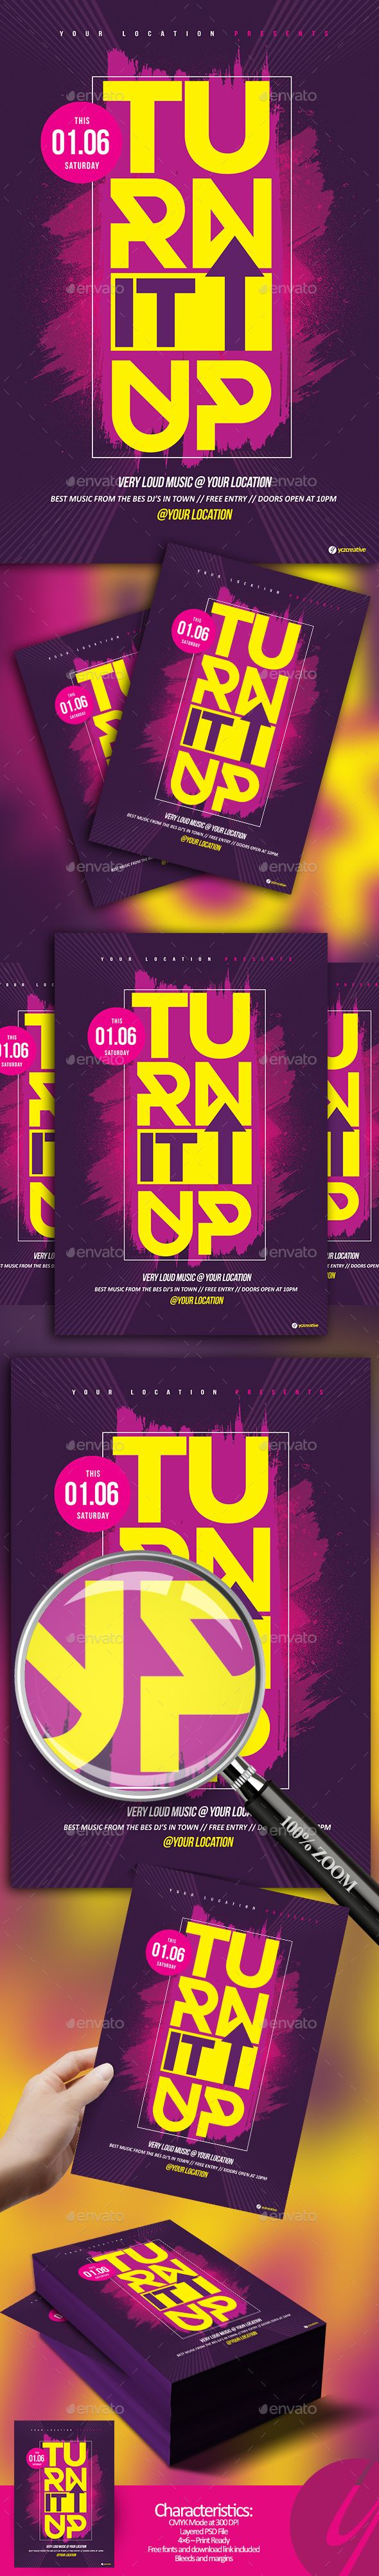 Turn It Up Flyer Template PSD